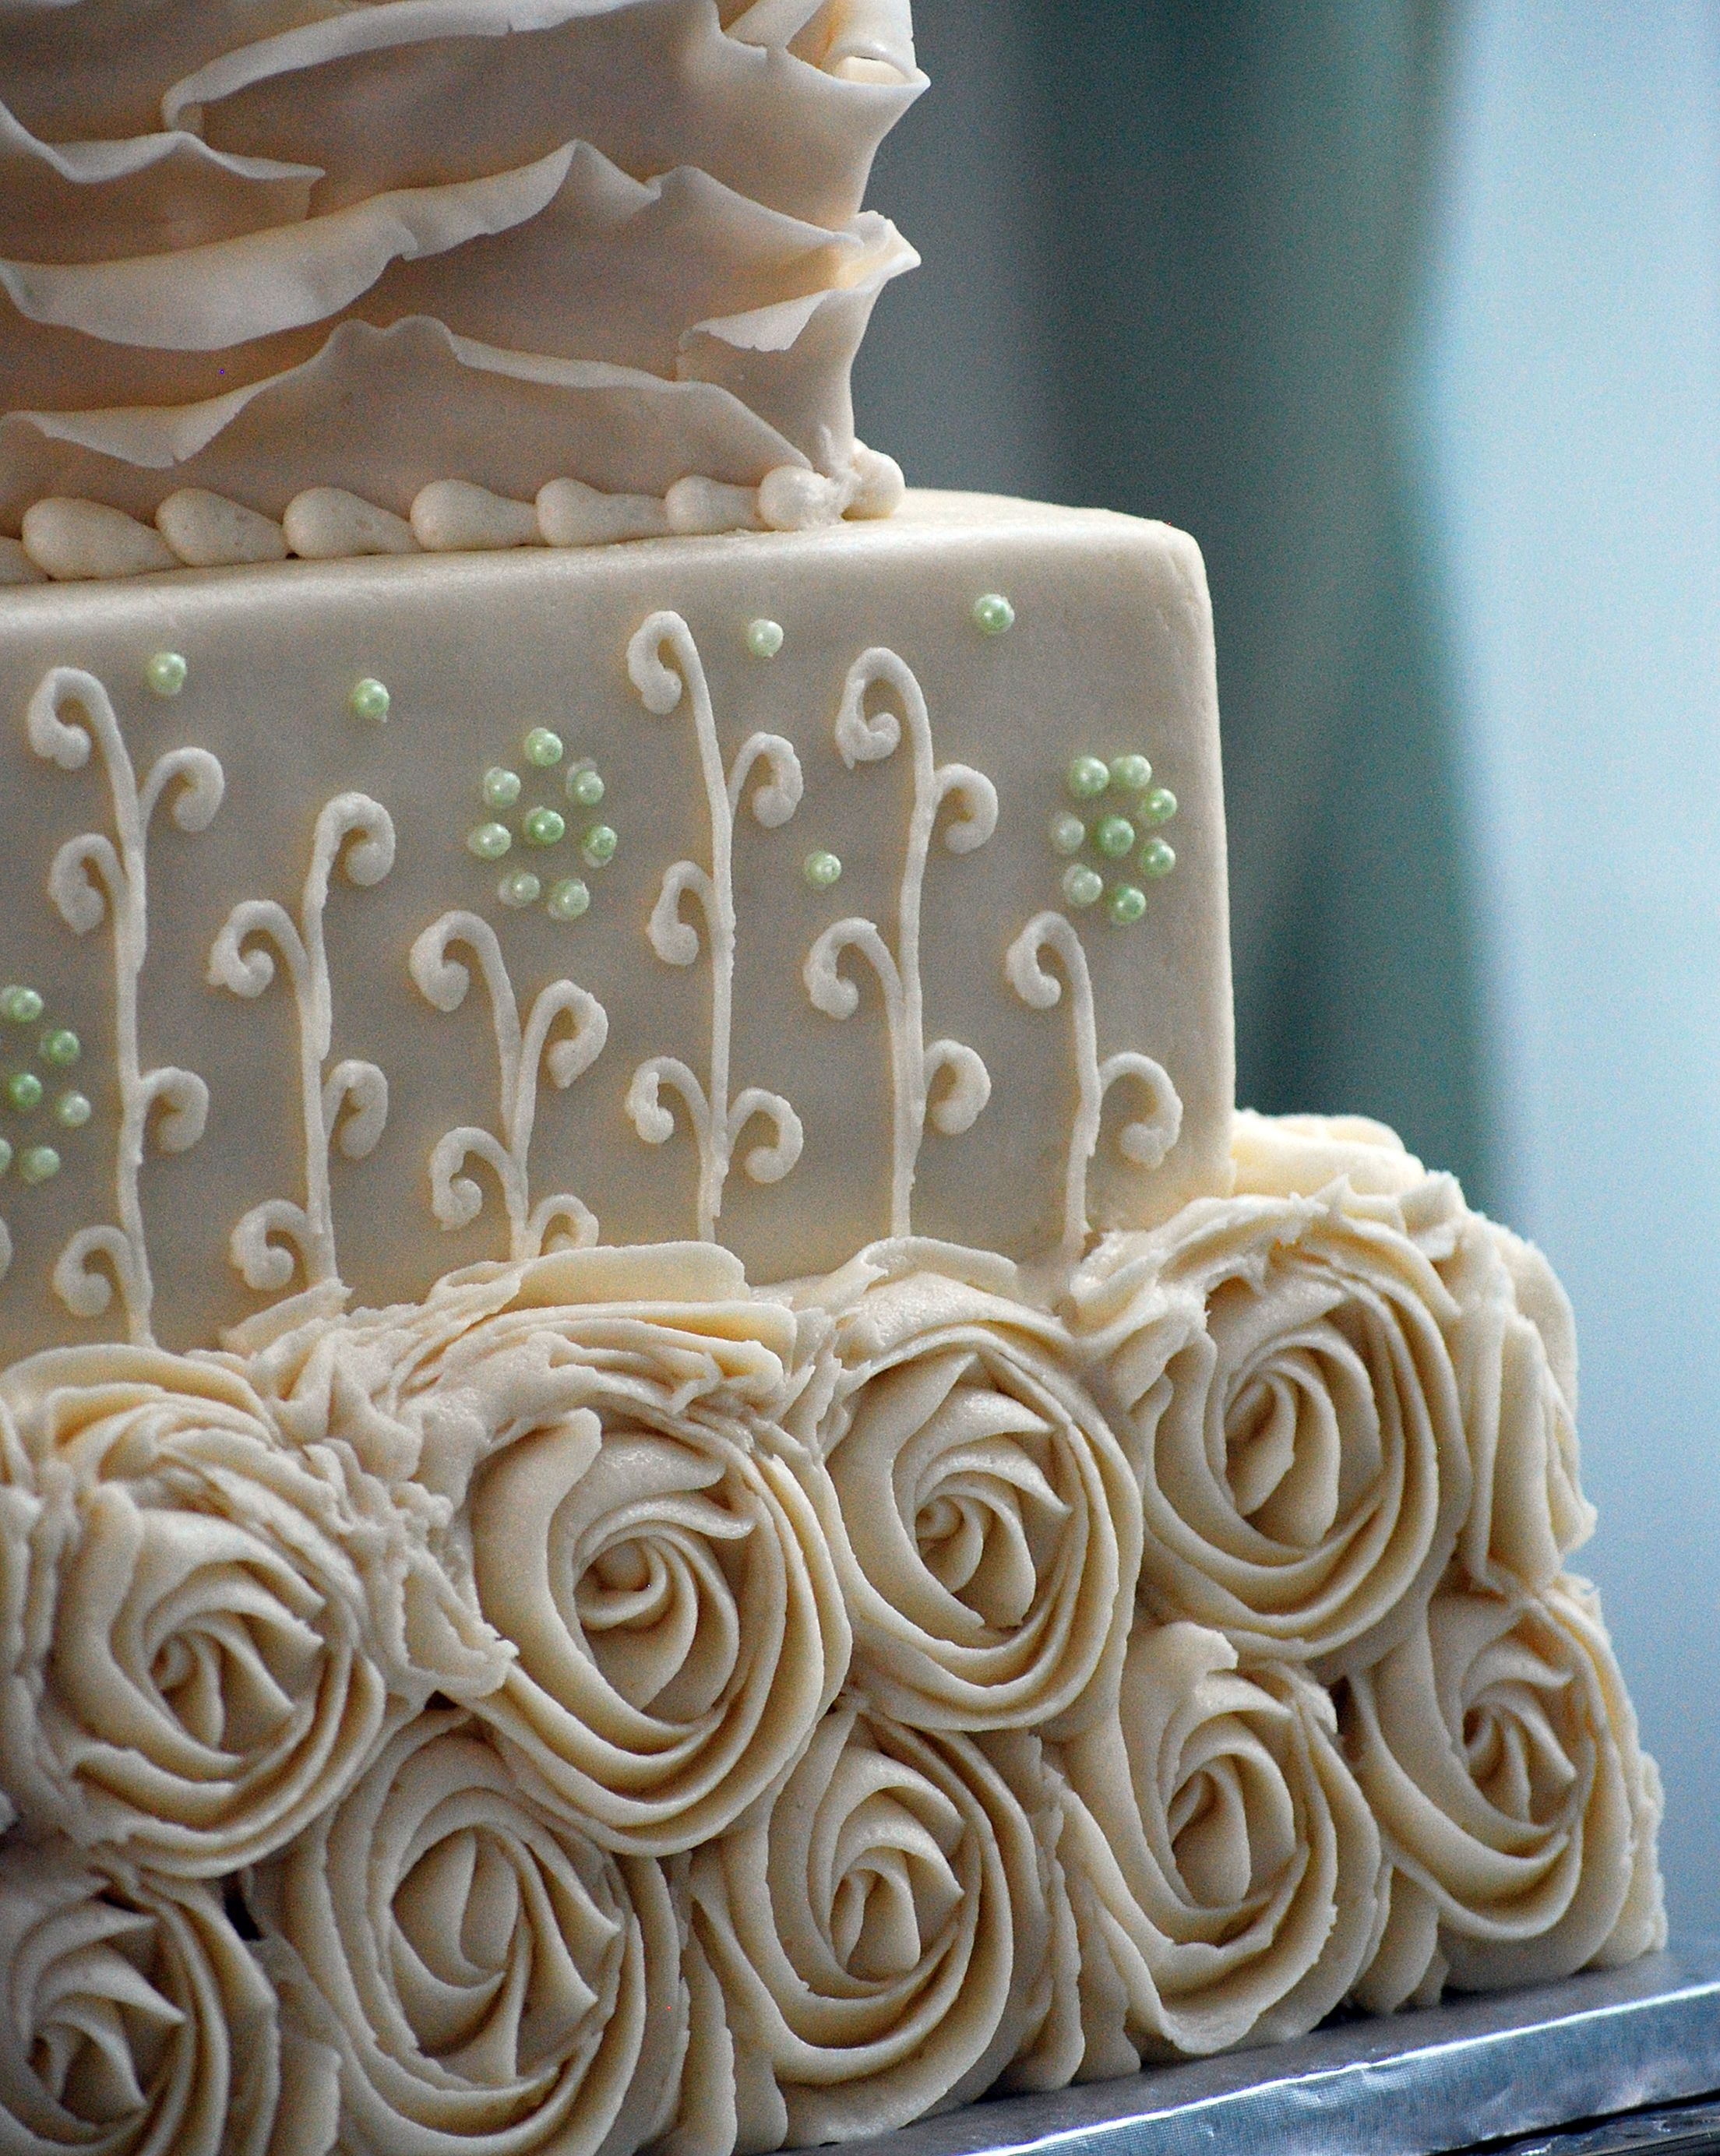 Rustic Shabby Chic Square Wedding Cake - Rosettes, Ruffles and ...